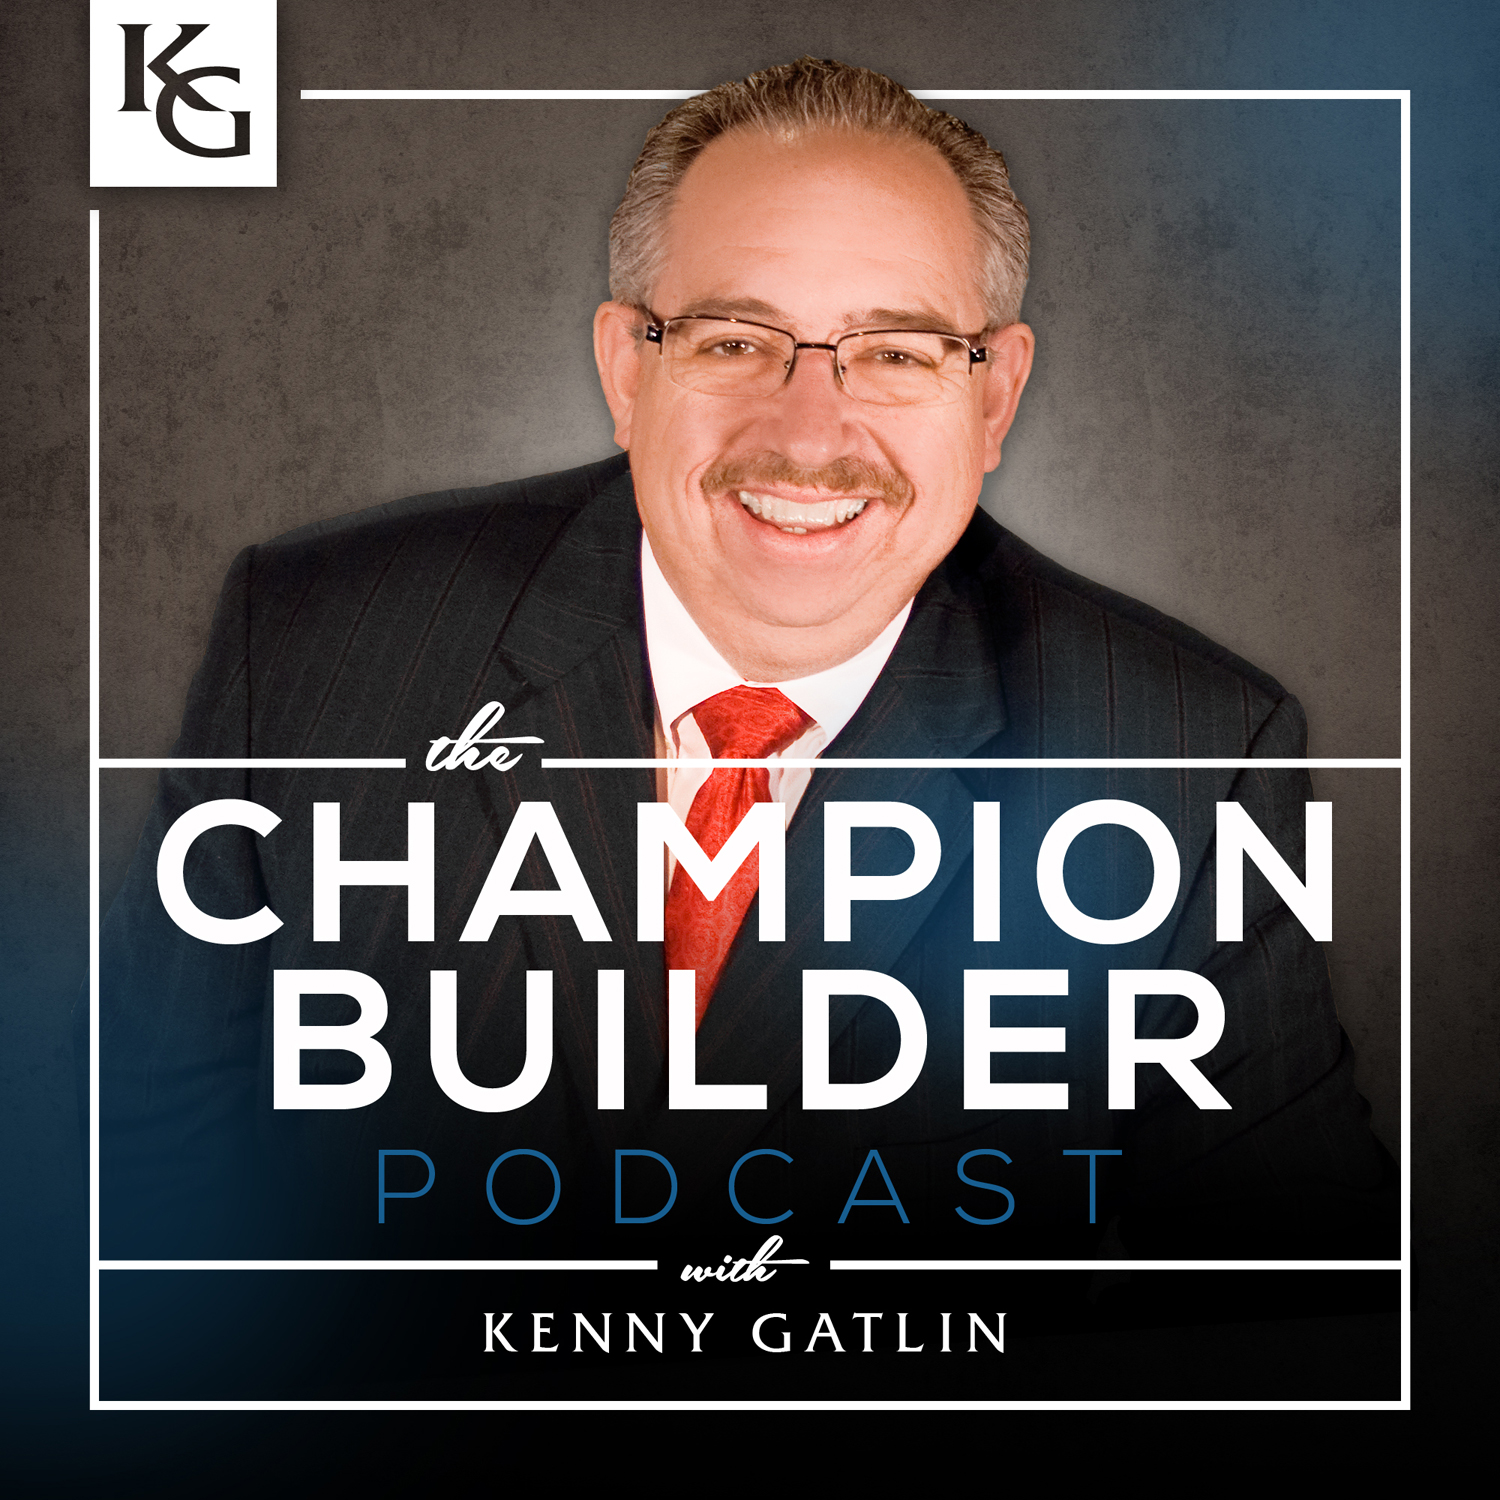 The Champion Builder Podcast